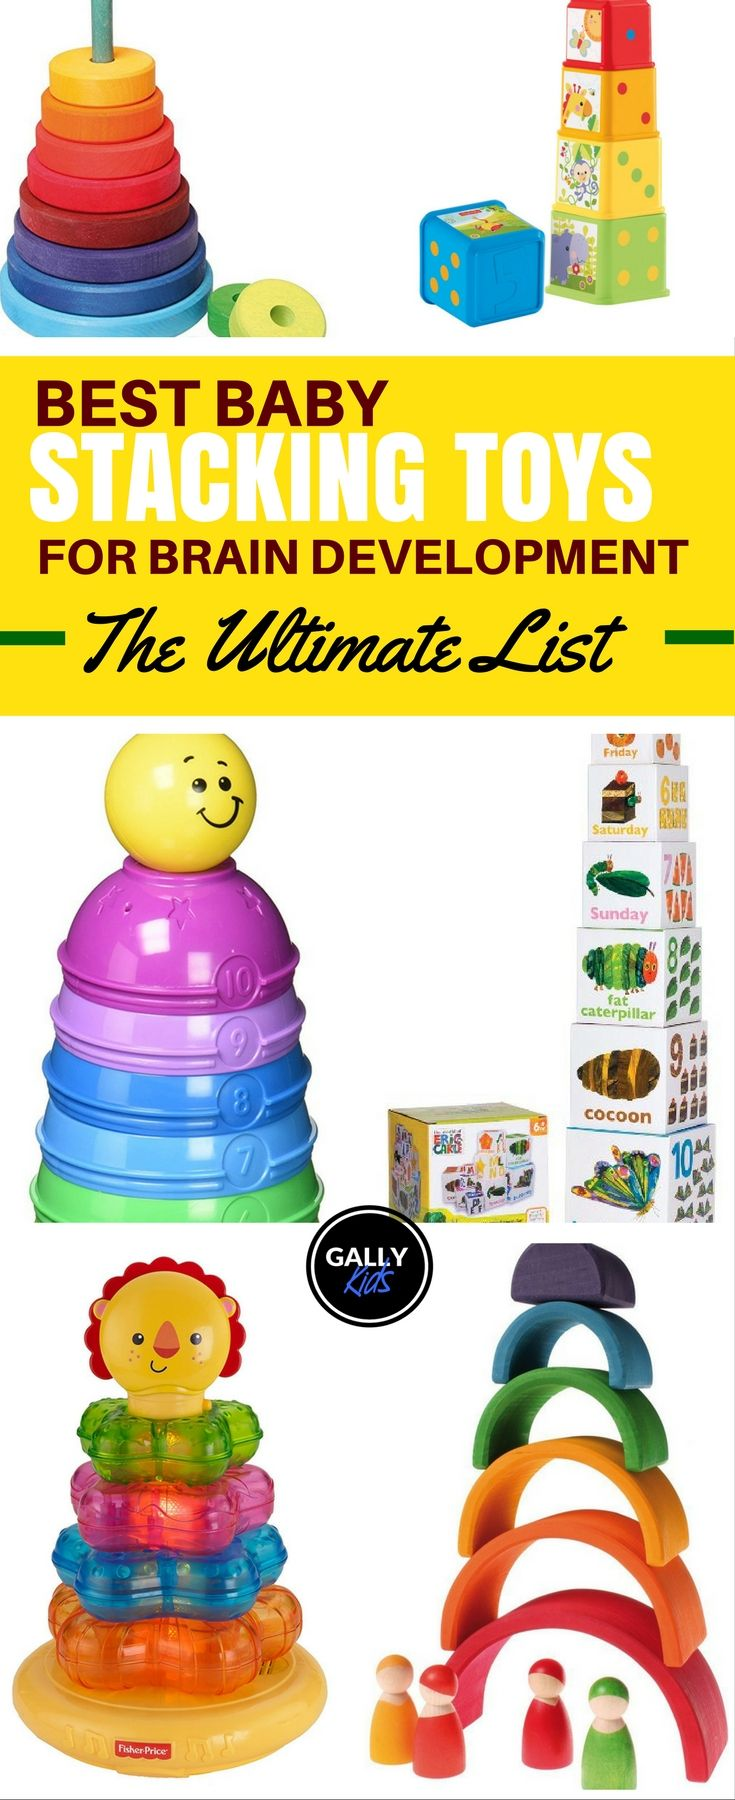 Brain Development Toys : Best ideas about stacking toys on pinterest rainbow